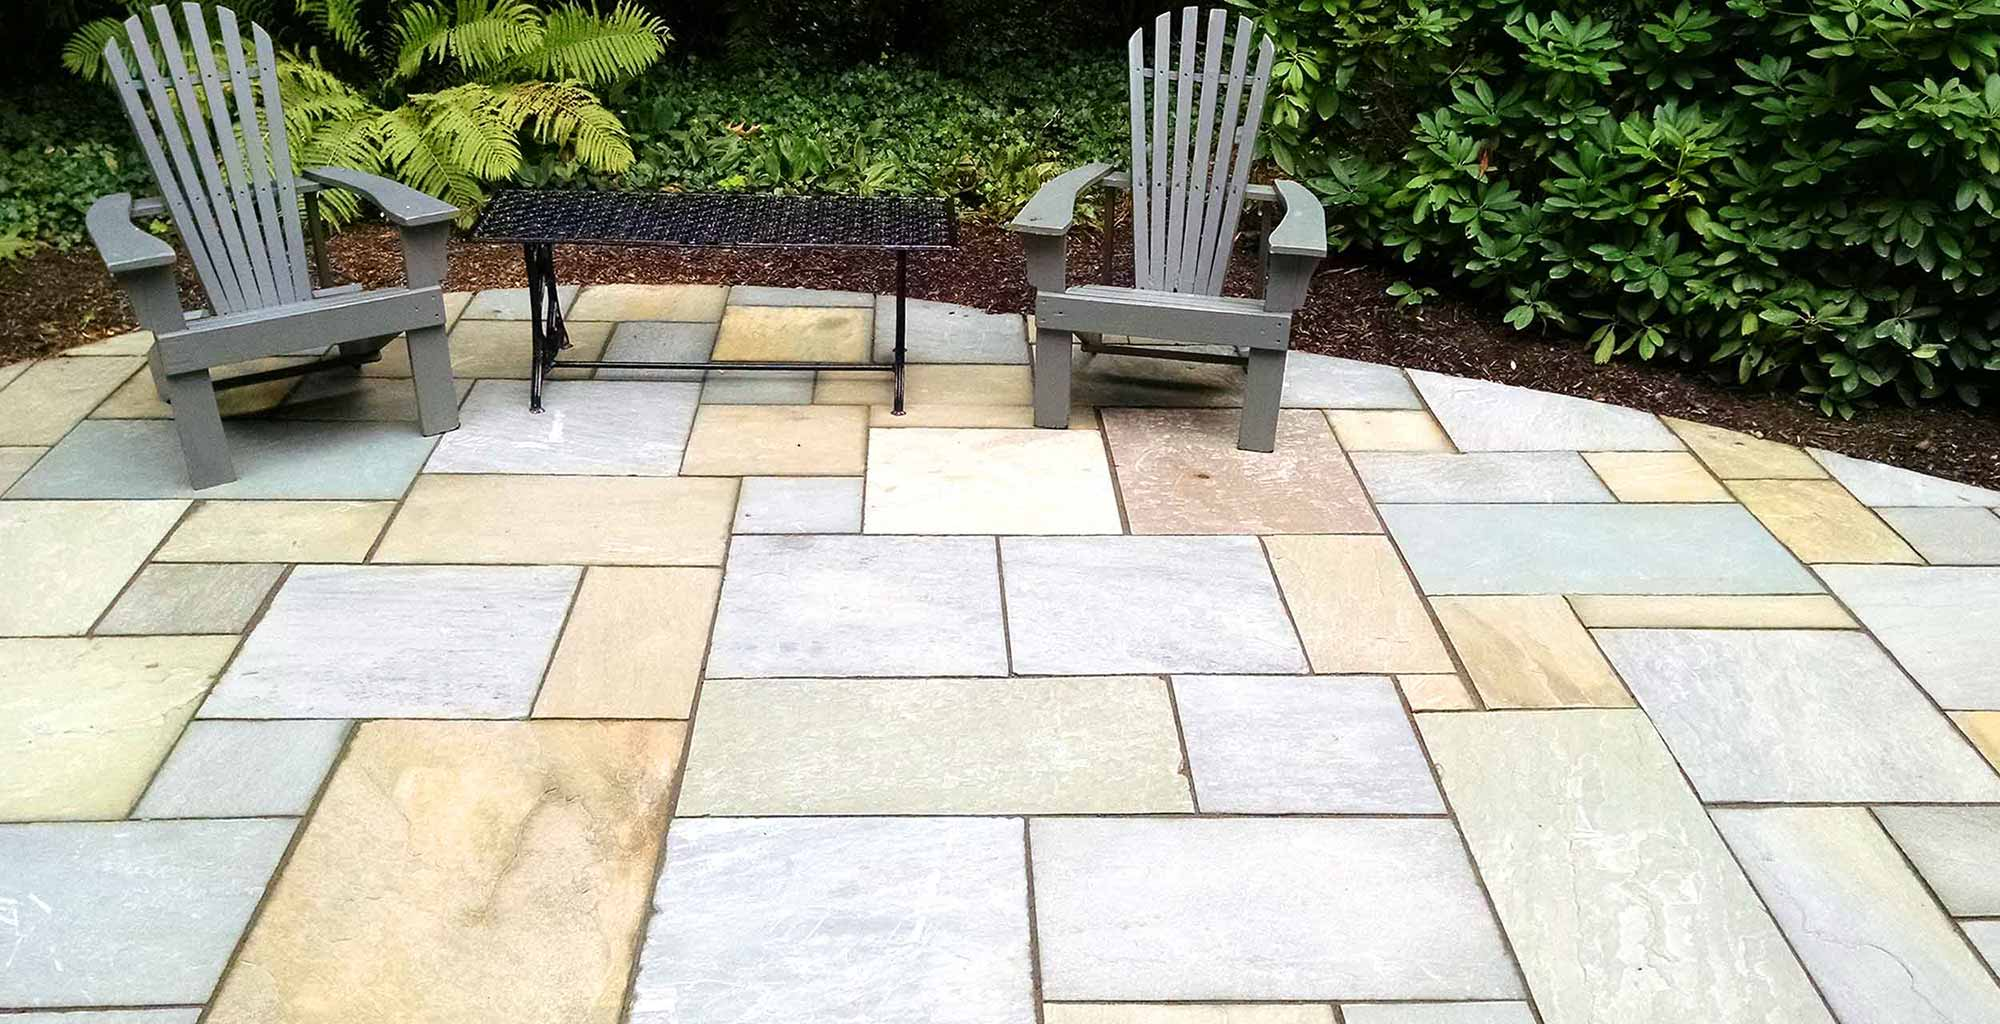 Irondequoit Landscape - Hardscaping, Installation of pavers, brick, flagstone, patios, retaining walls, natural stone walls, steps, and front stoops in Rochester, NY.